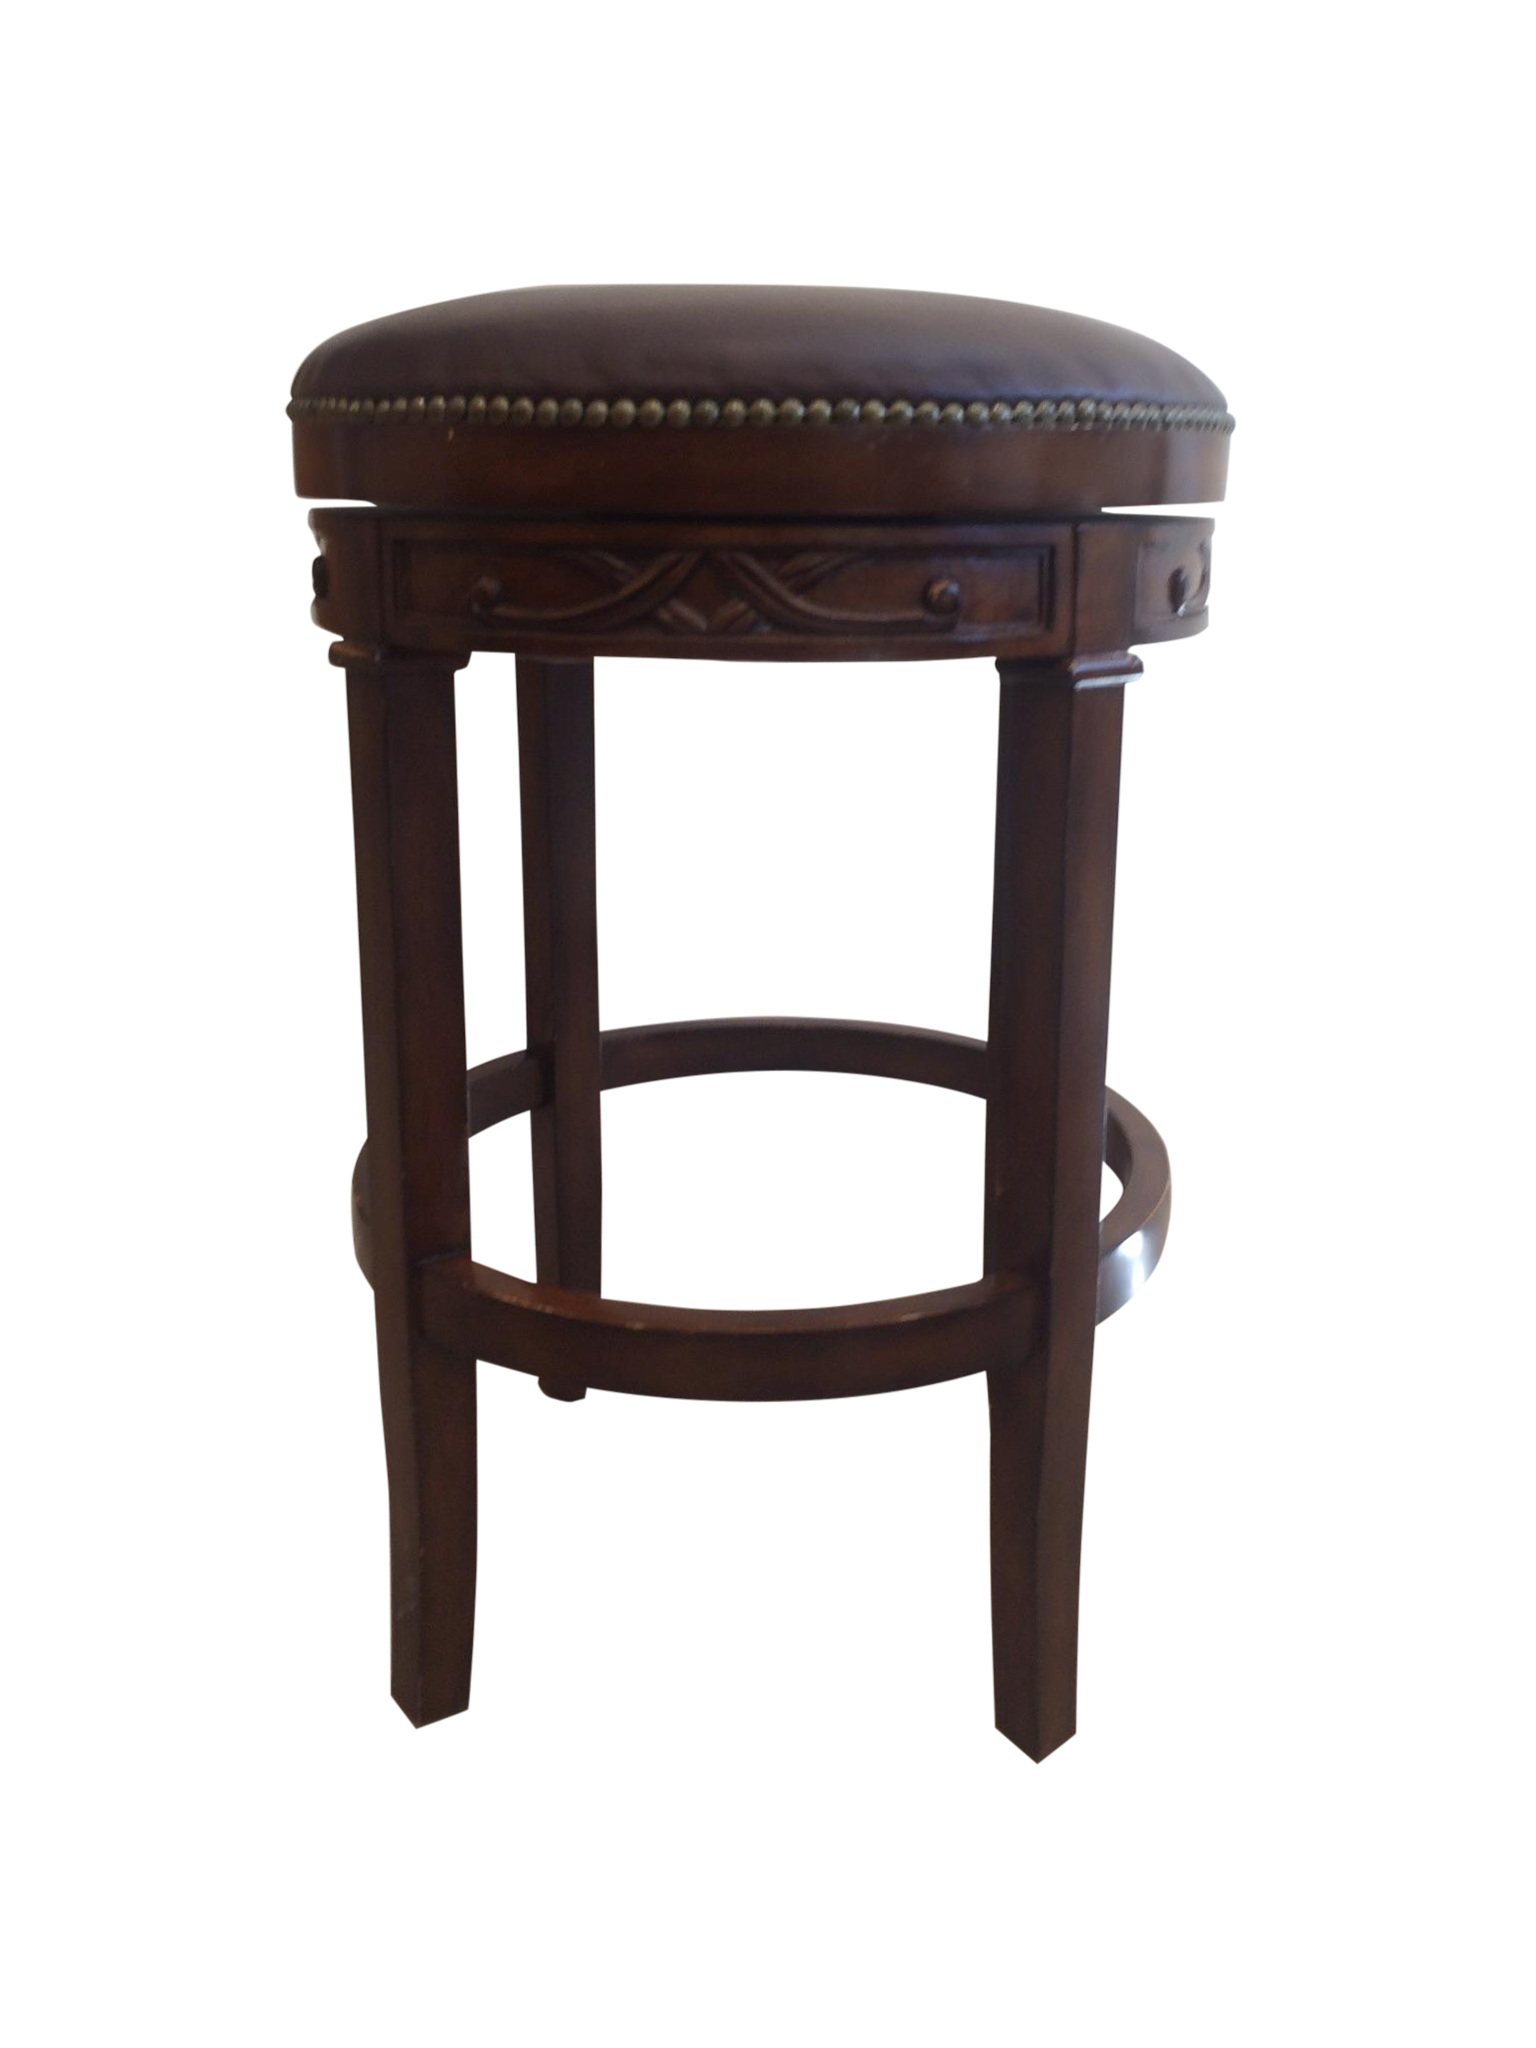 Swivel Leather amp Wood Bar Stools Set of 4 Chairish : 20155ecb 9561 4288 9bd3 a0ecfd5185b8 from www.chairish.com size 1536 x 2048 png 822kB